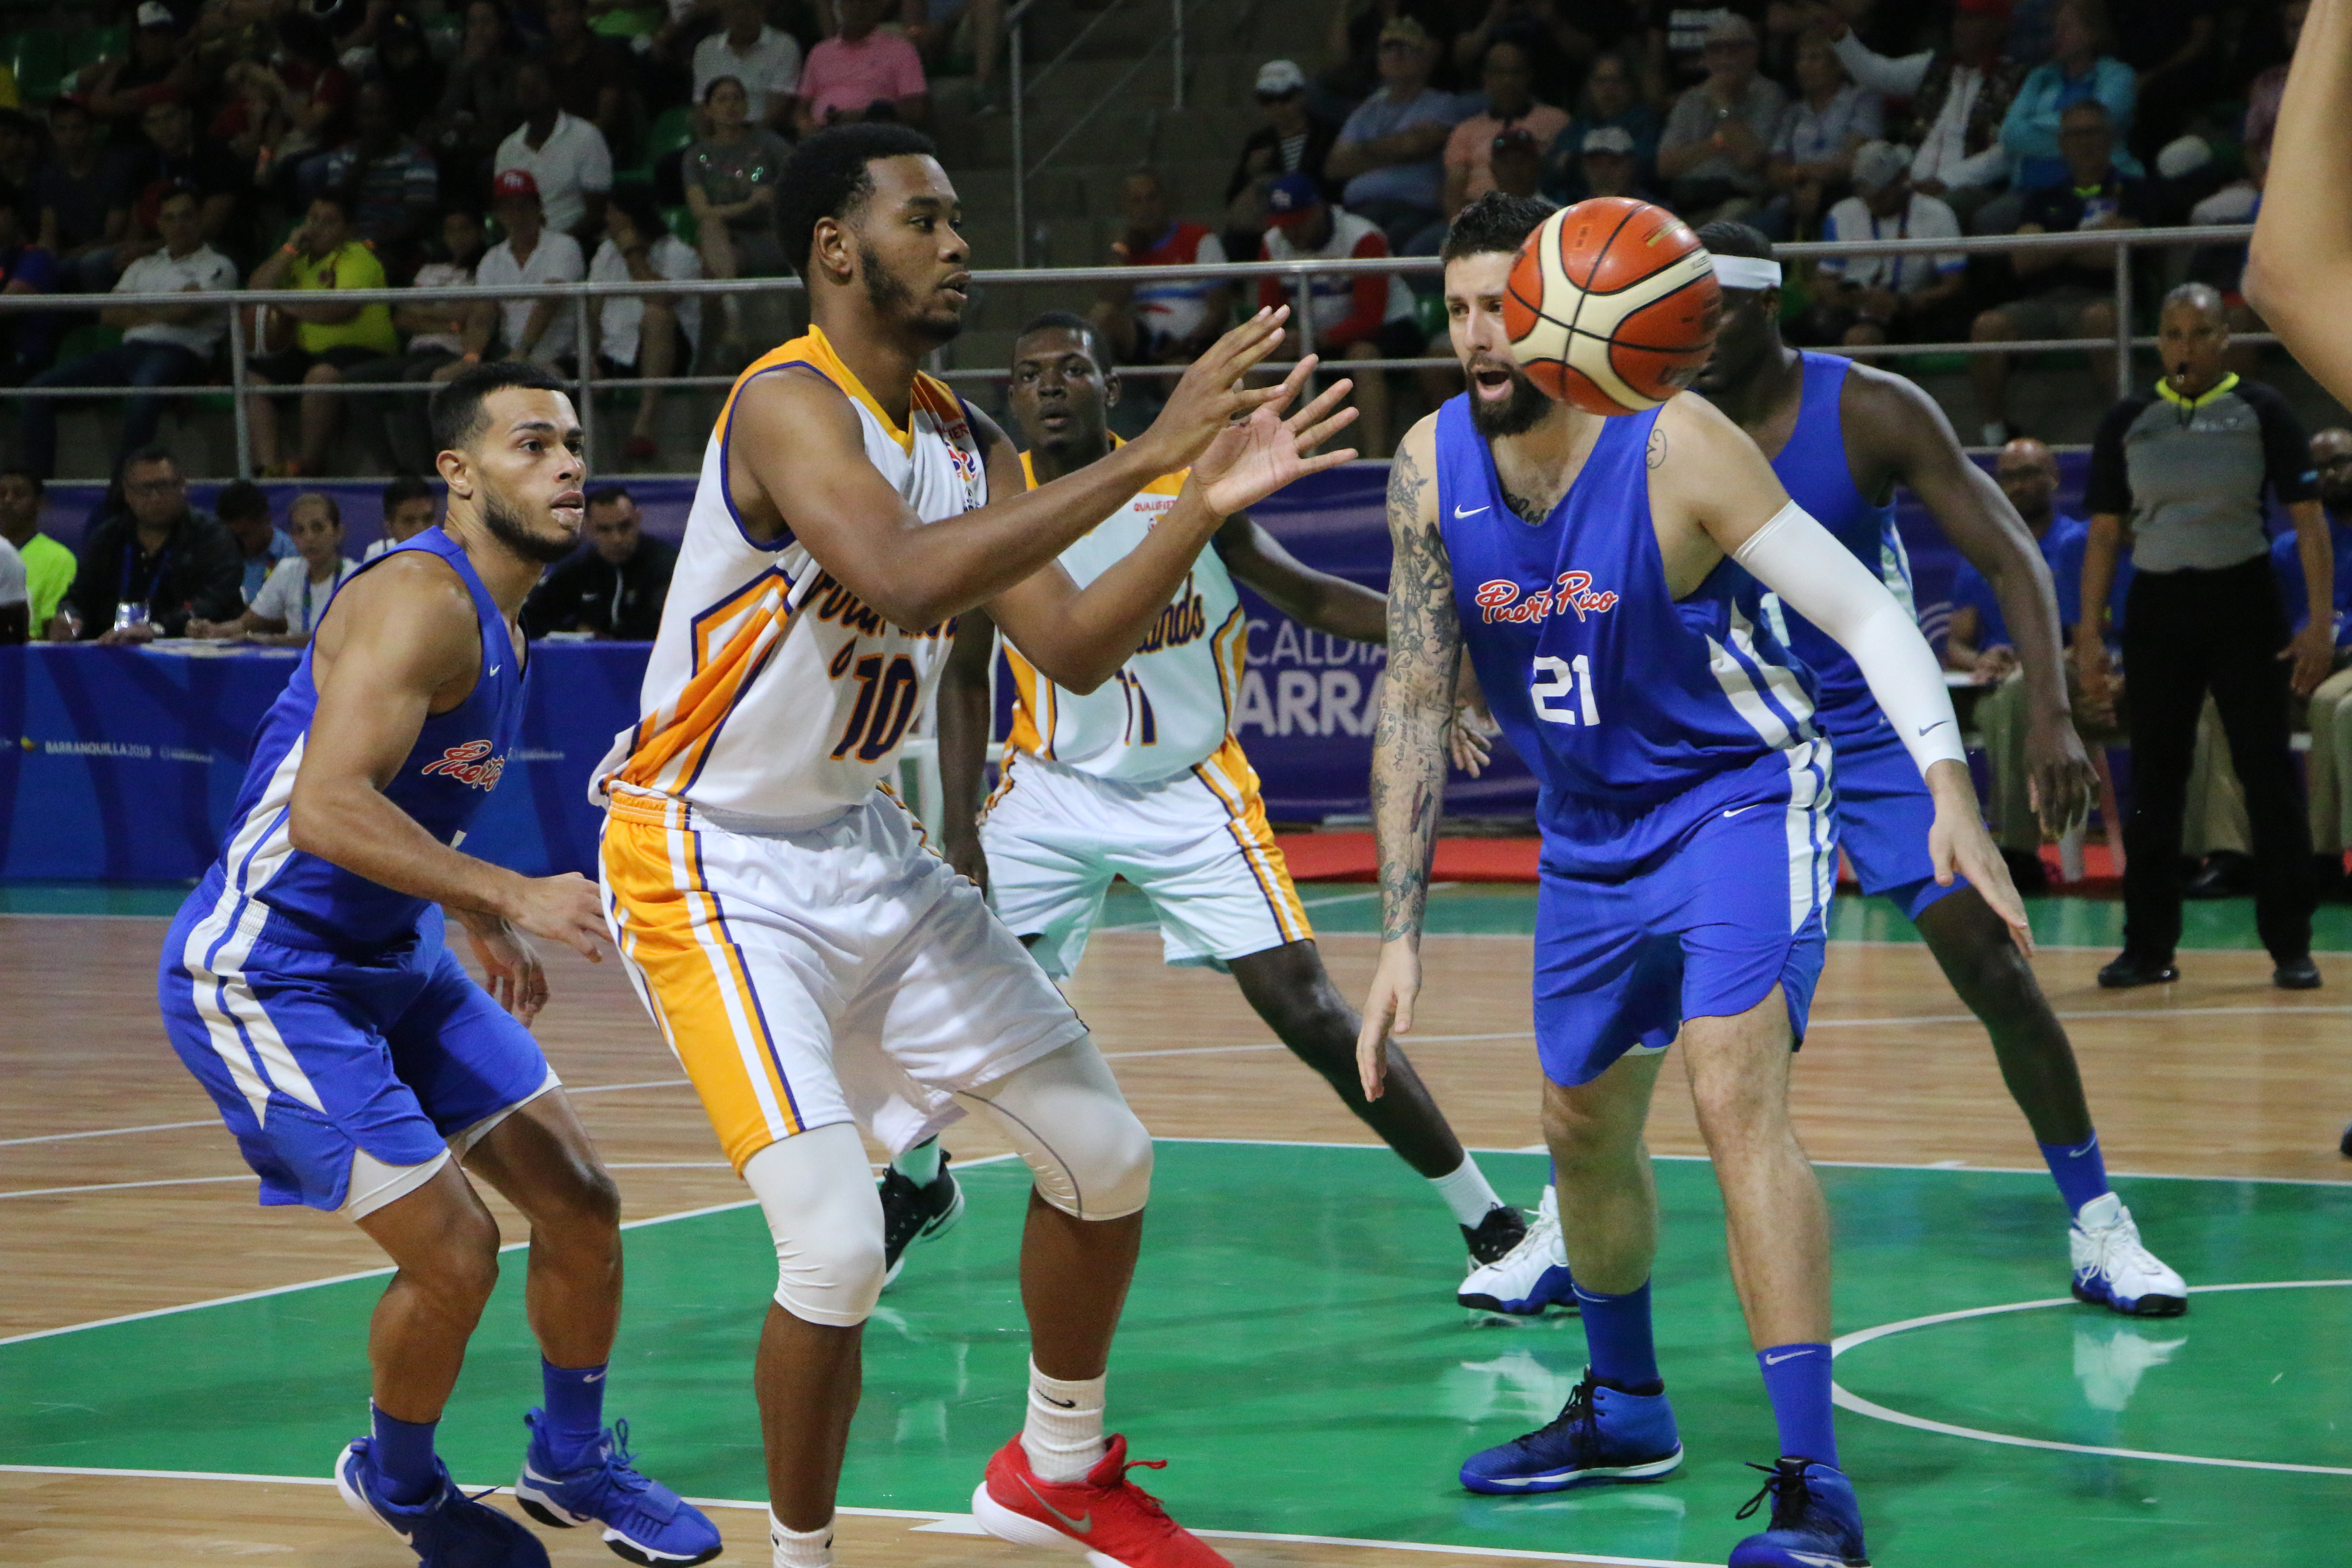 You are currently viewing Athletics and Men's Basketball begin competition for Team ISV at the 2018 CAC Games